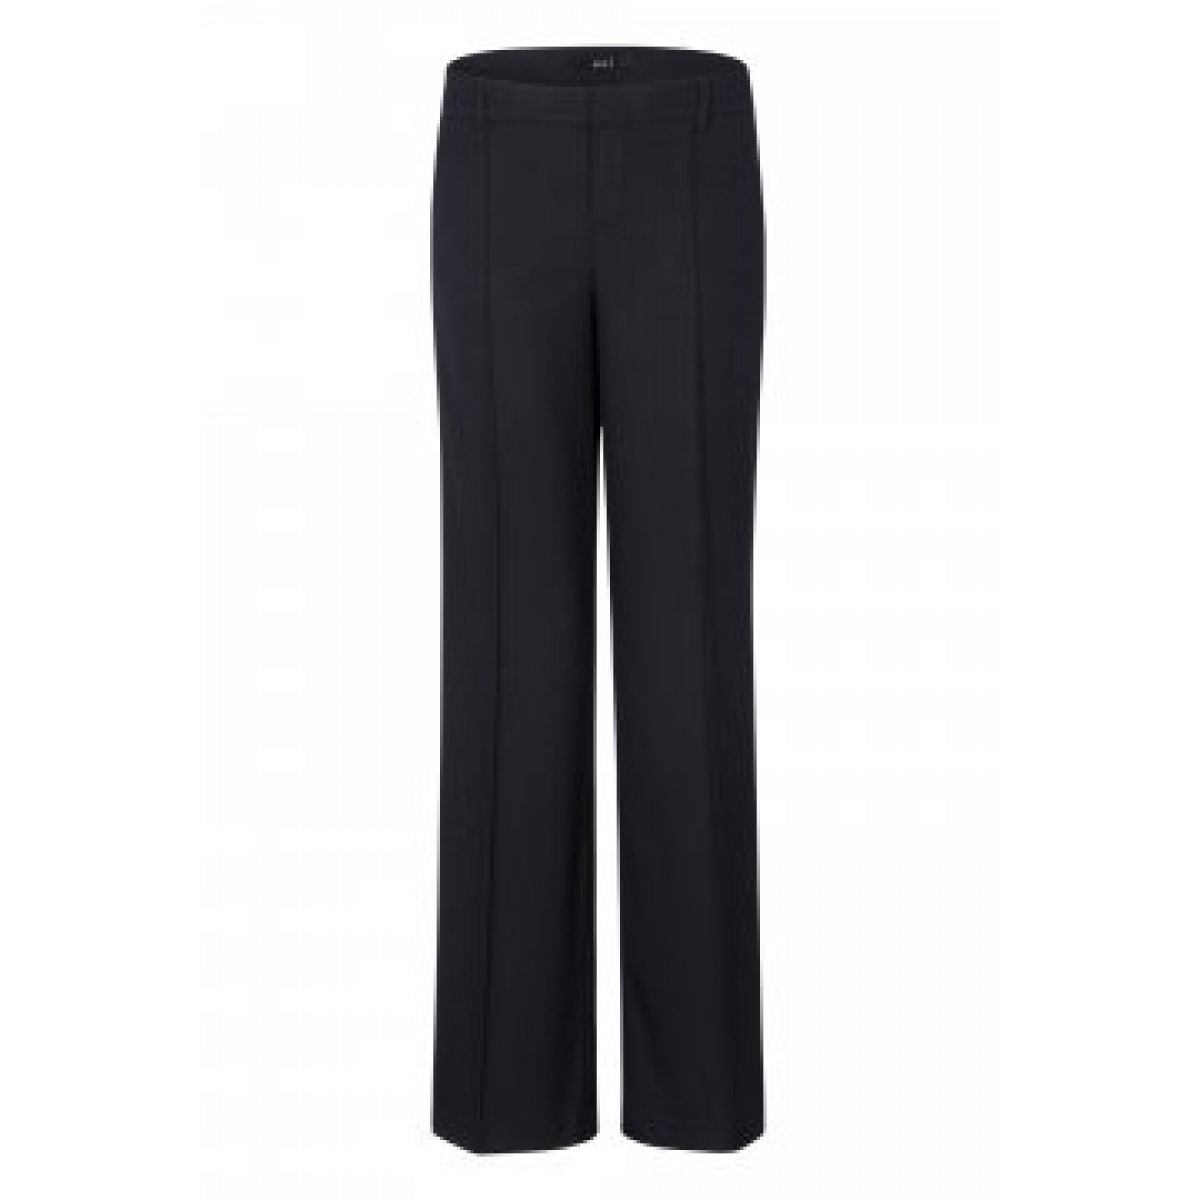 Oui 50237 Trousers Dark Blue-35